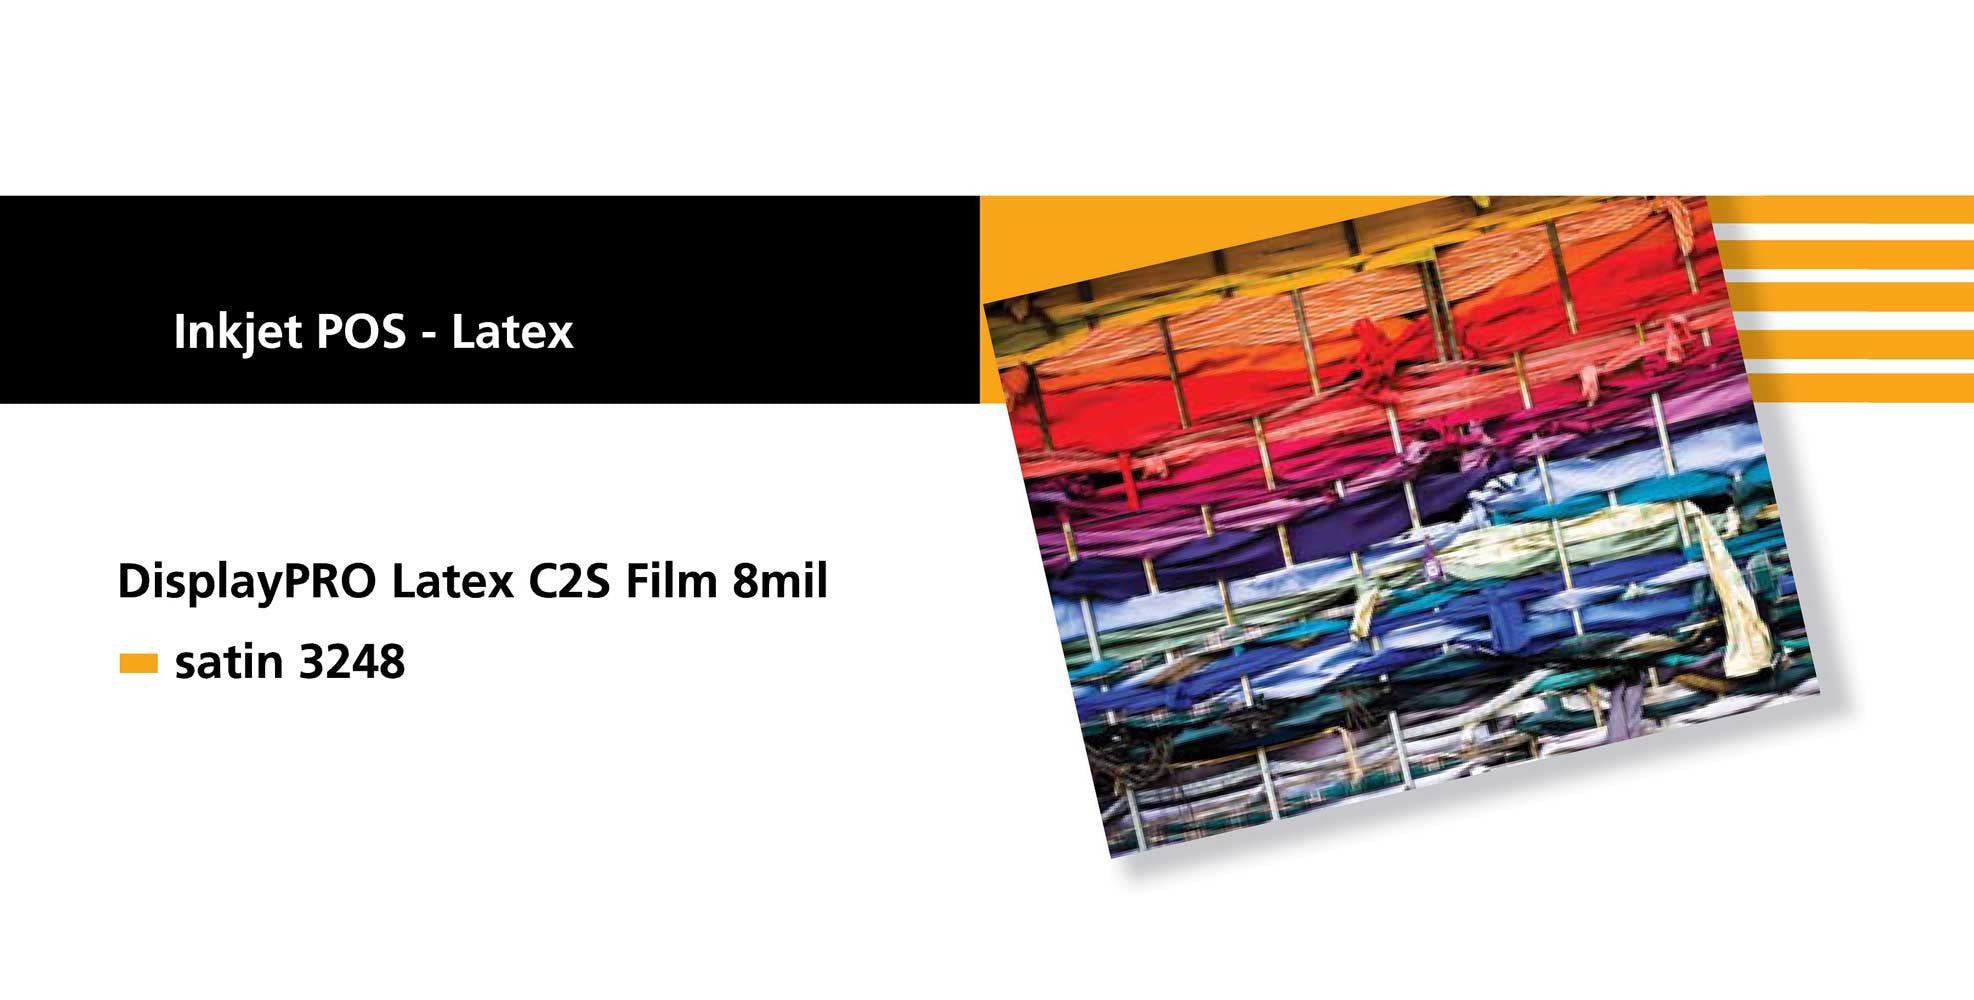 Sihl 3248 Display PRO 8 Latex C2S Film 8 mil